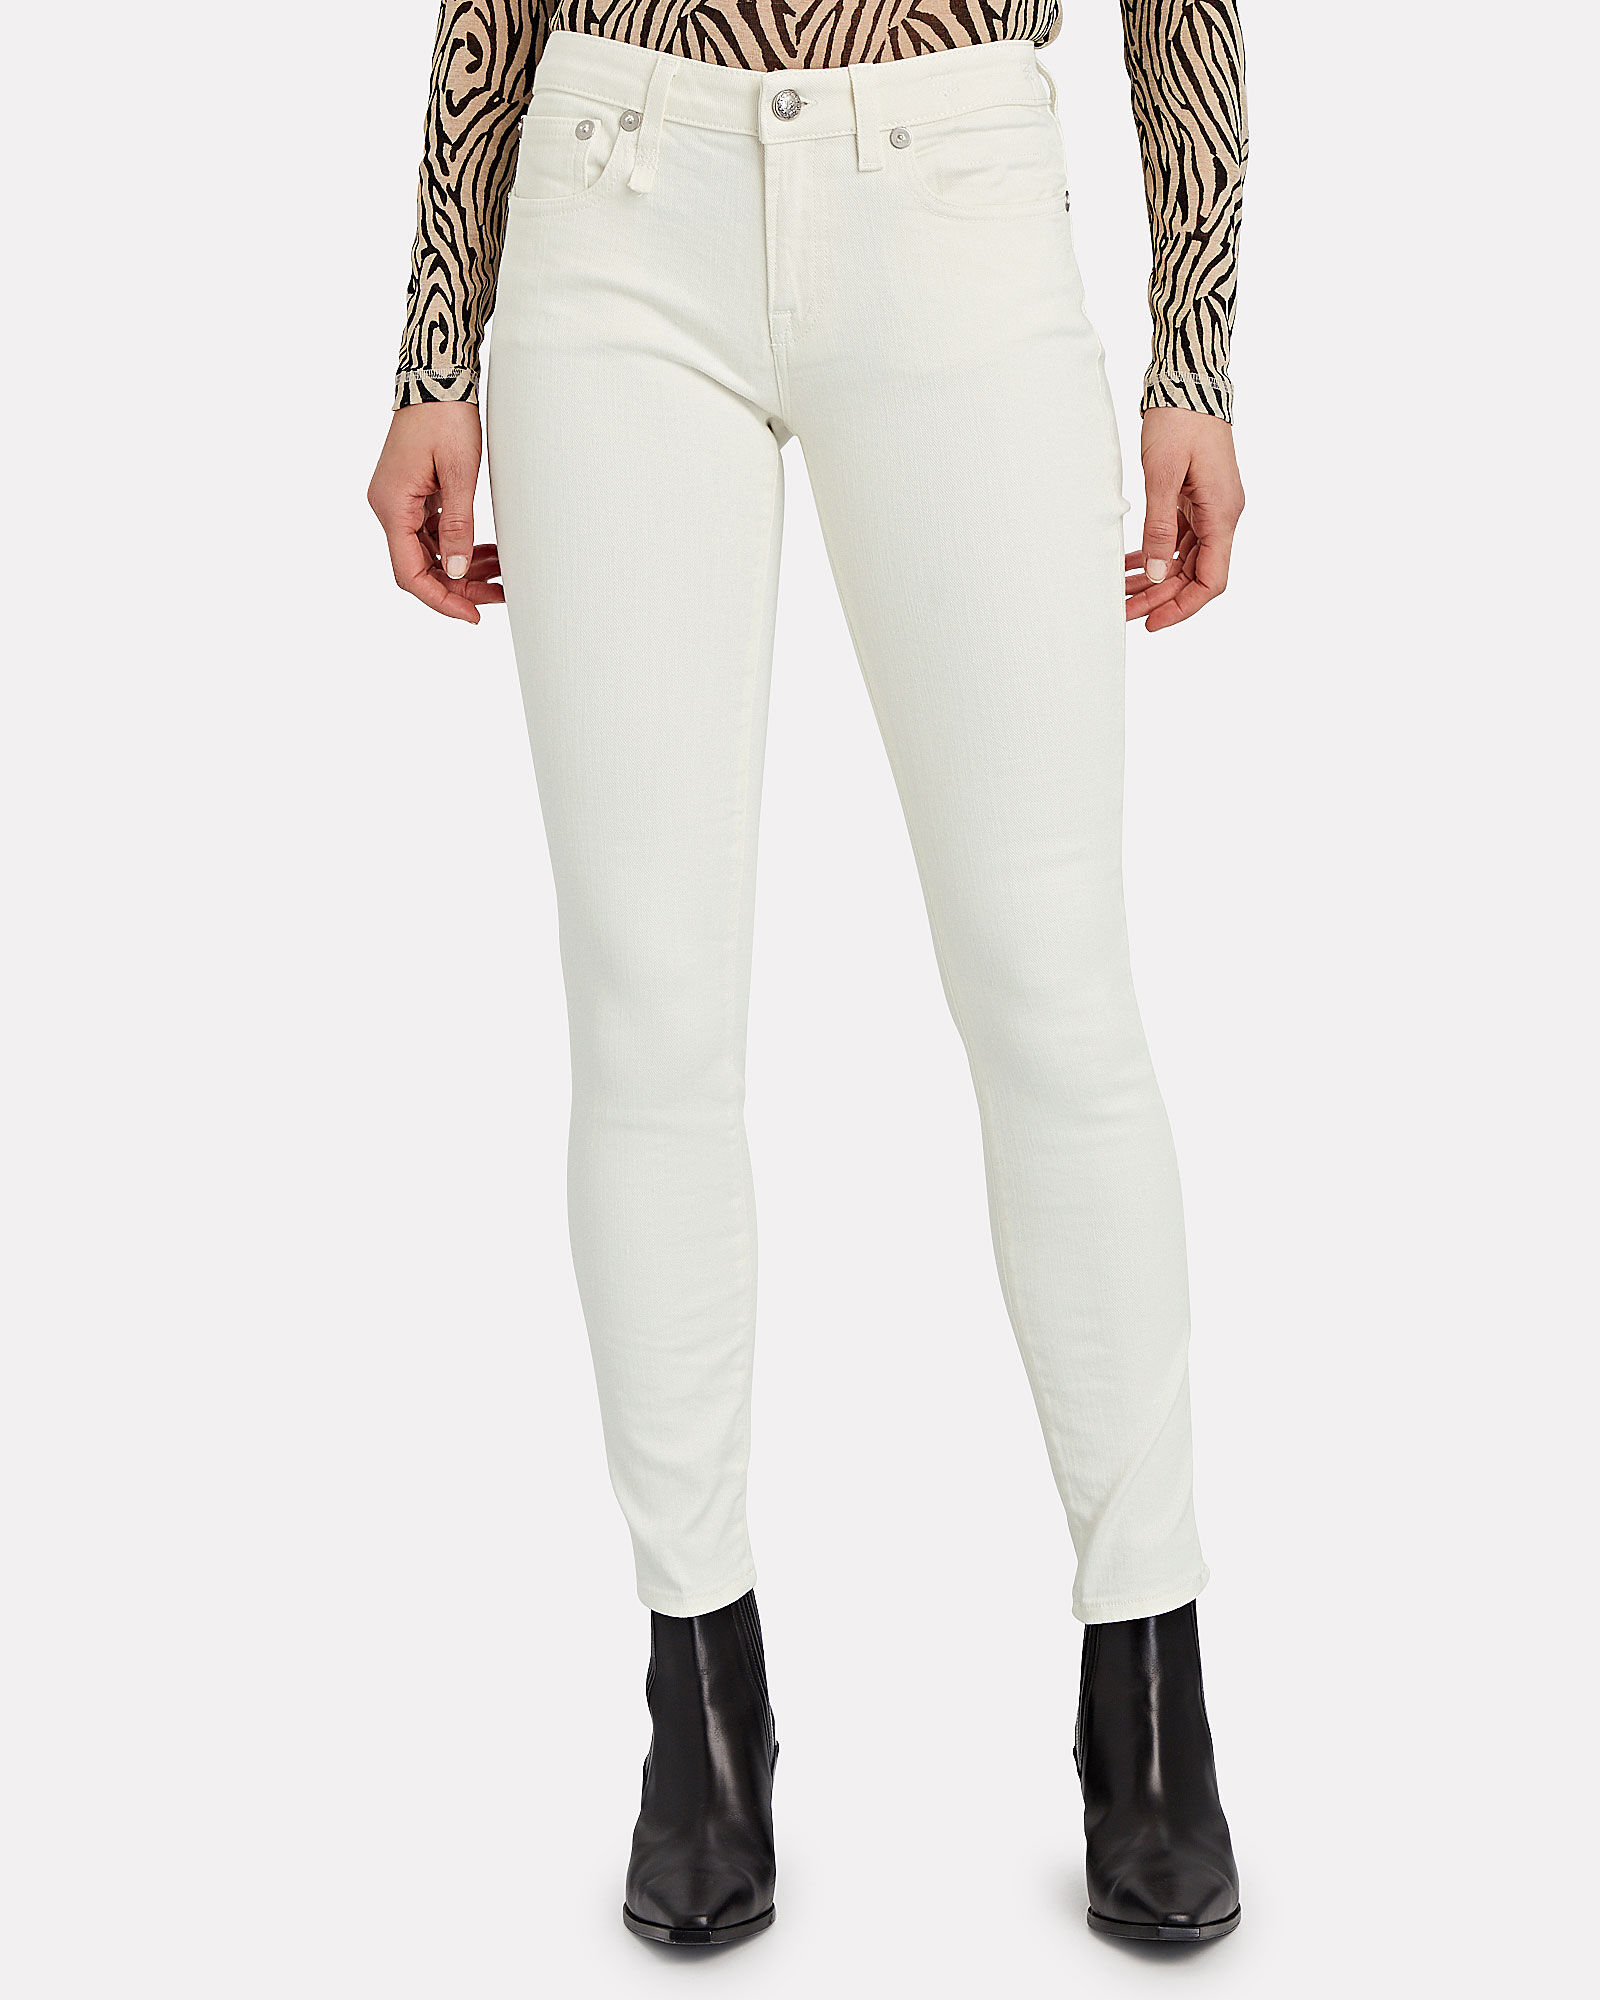 Kate Mid-Rise Skinny Jeans, WHITE, hi-res